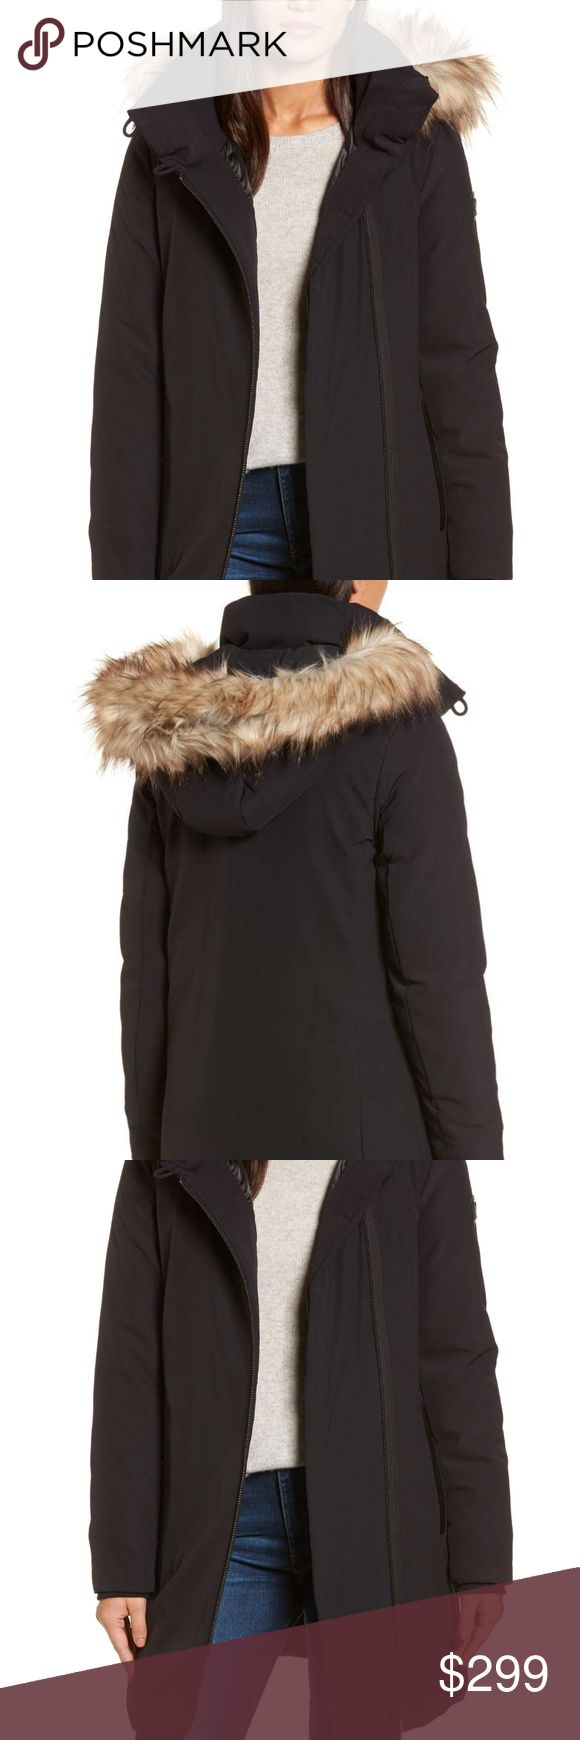 "NWT DKNY Black Hooded Parka Size Small Faux Fur A ruff of soft faux fur trim traces the removable hood of a down-and-feather insulated parka made from stretch nylon for a comfortable fit.  The fur is black on the actual coat, not the brown.  DKNY Bag is included.  DKNY Hooded Water Resistant Stretch Parka with Faux Fur Trim  Bust: 33.5""- 35.5"" Waist: 26-29"" Hip: 36-39"" DKNY Jackets & Coats Puffers"